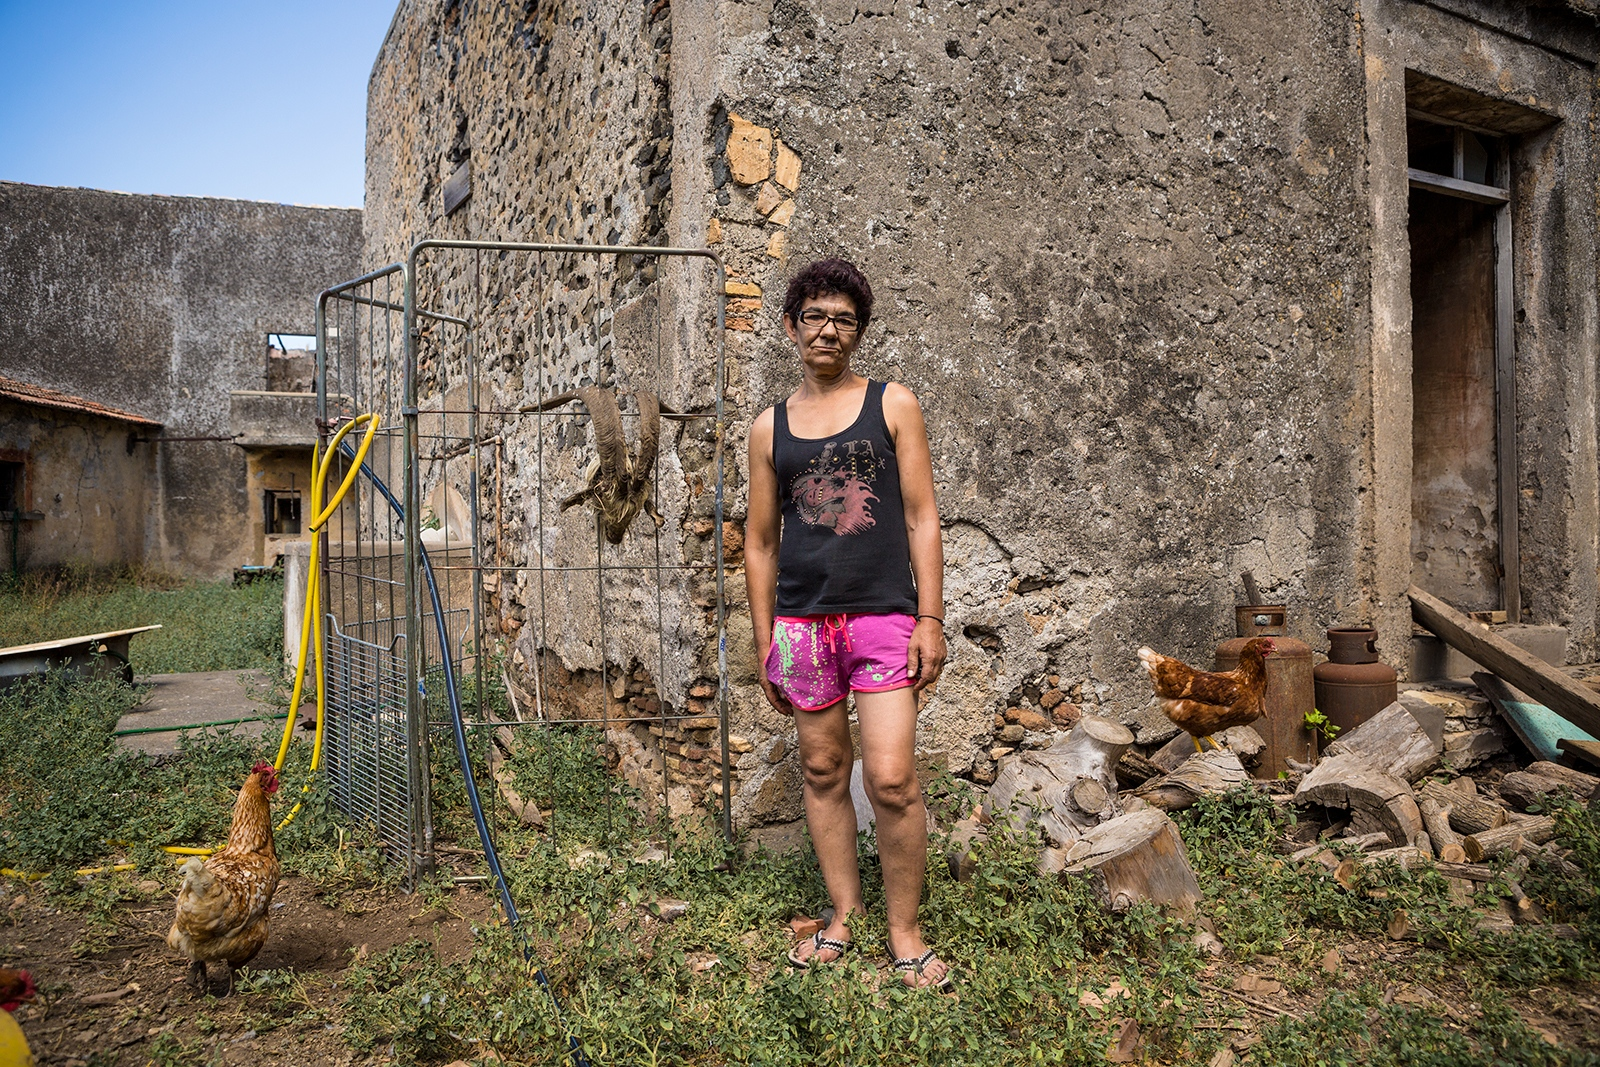 A local Farmer posing next to the remains of a medieval tower erecting in her property